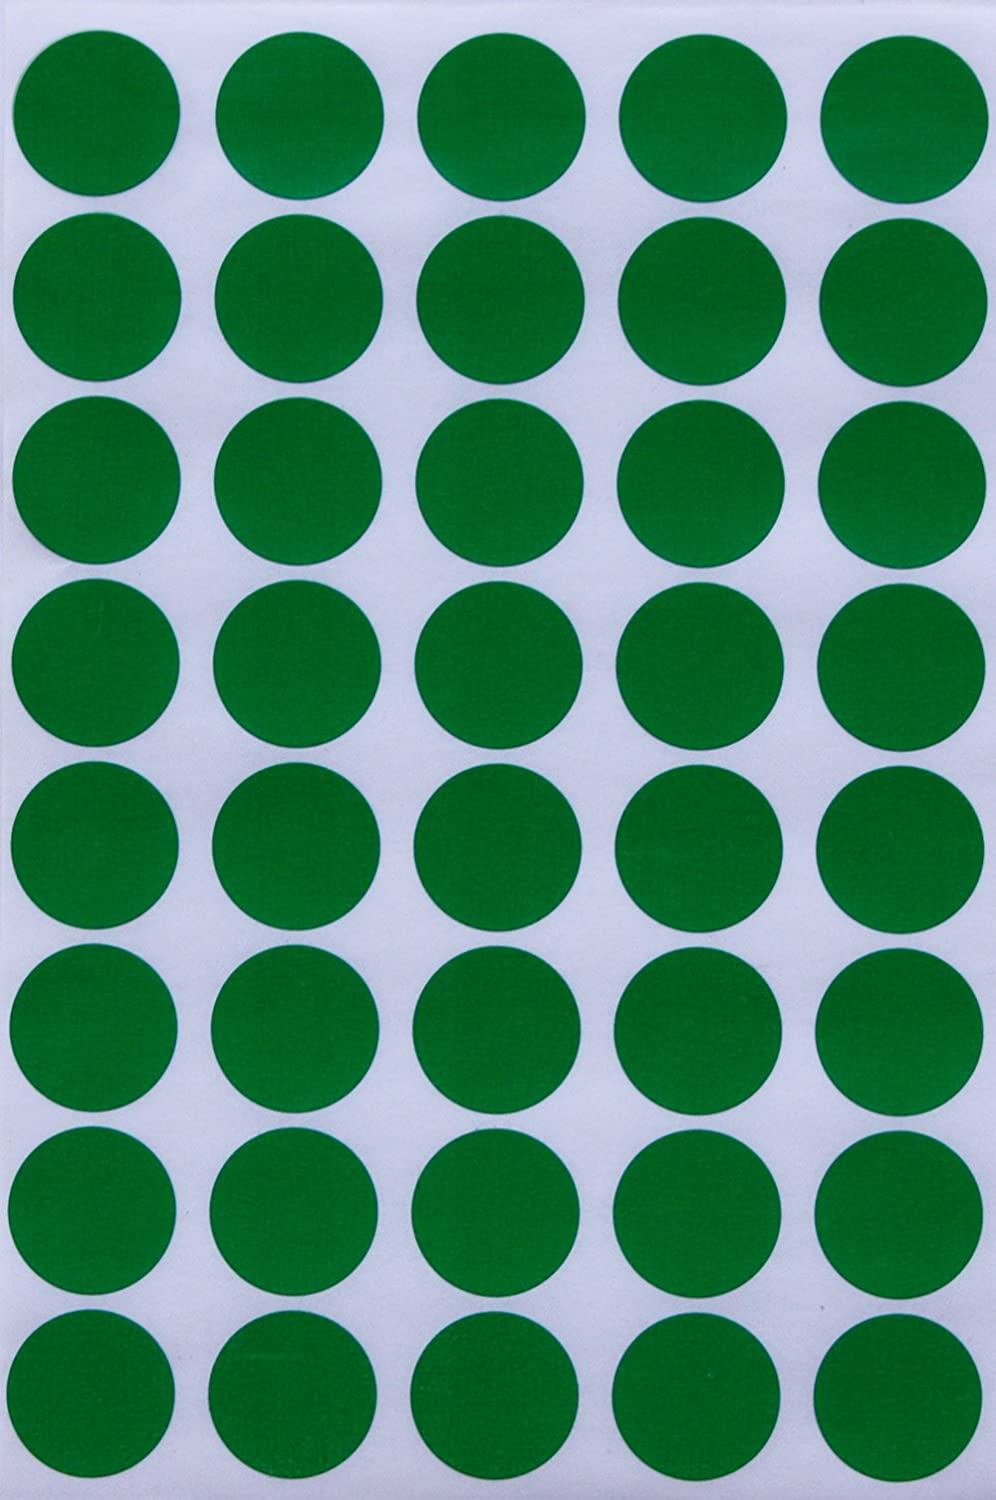 Amazon com round sticker colored dot stickers 19mm 3 4 inch green 280 pack by royal green office products